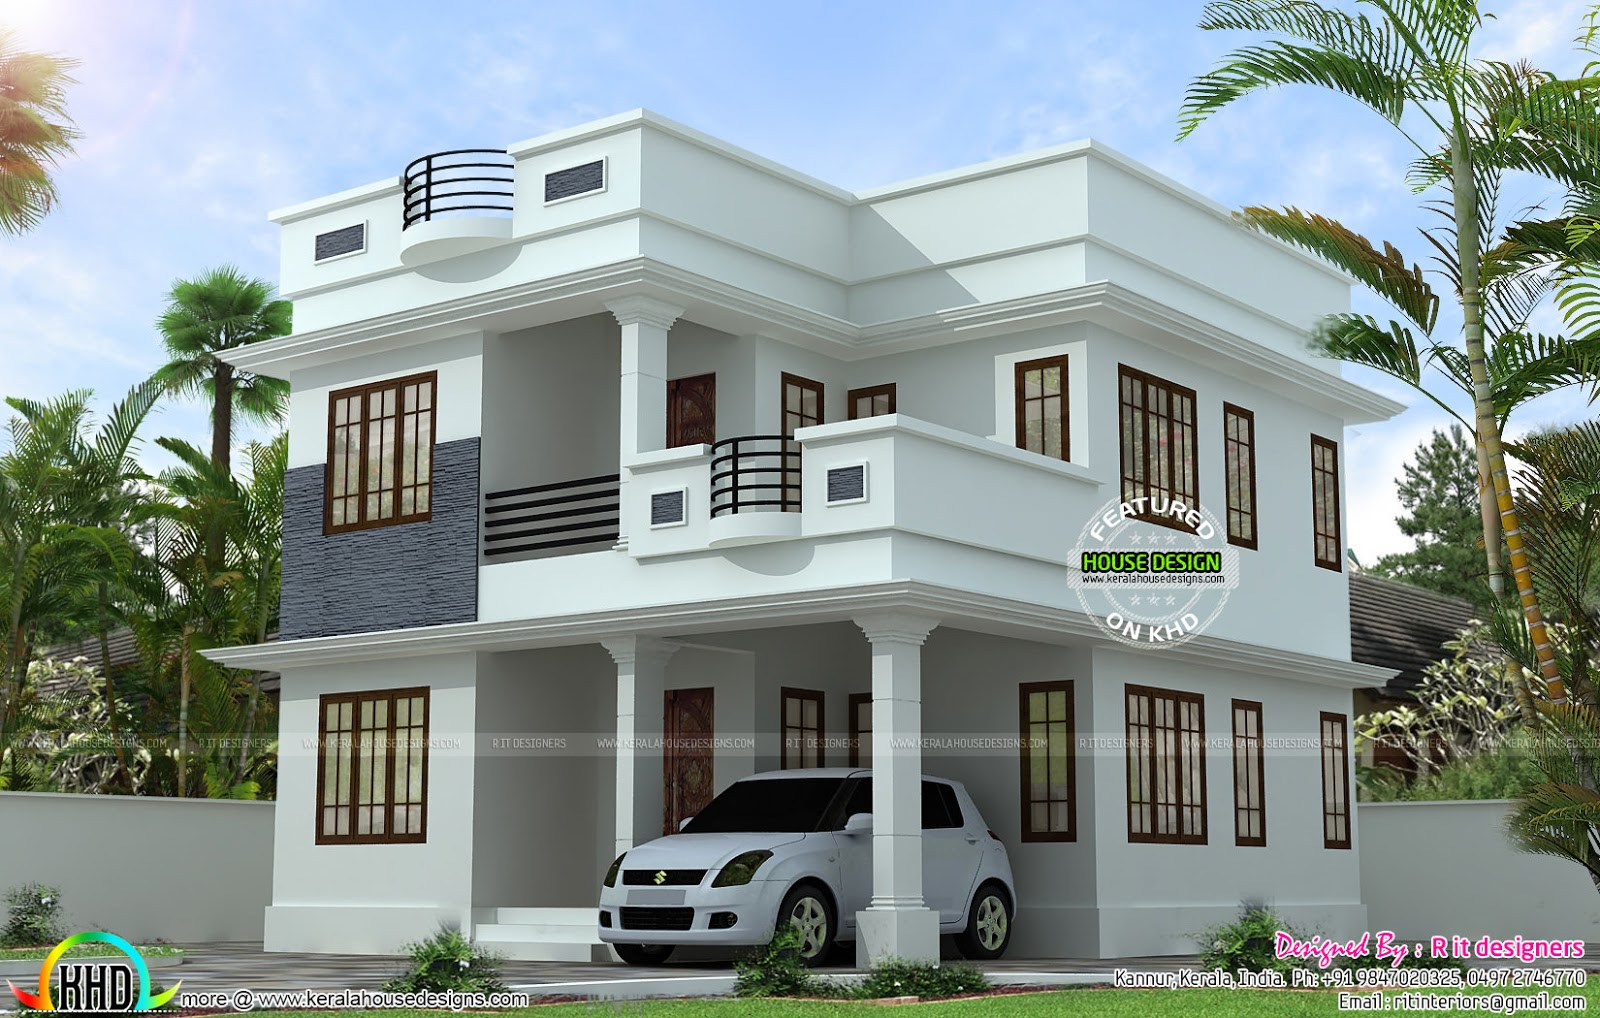 Chic Neat and simple small house plan - Kerala home design and floor plans new simple home designs